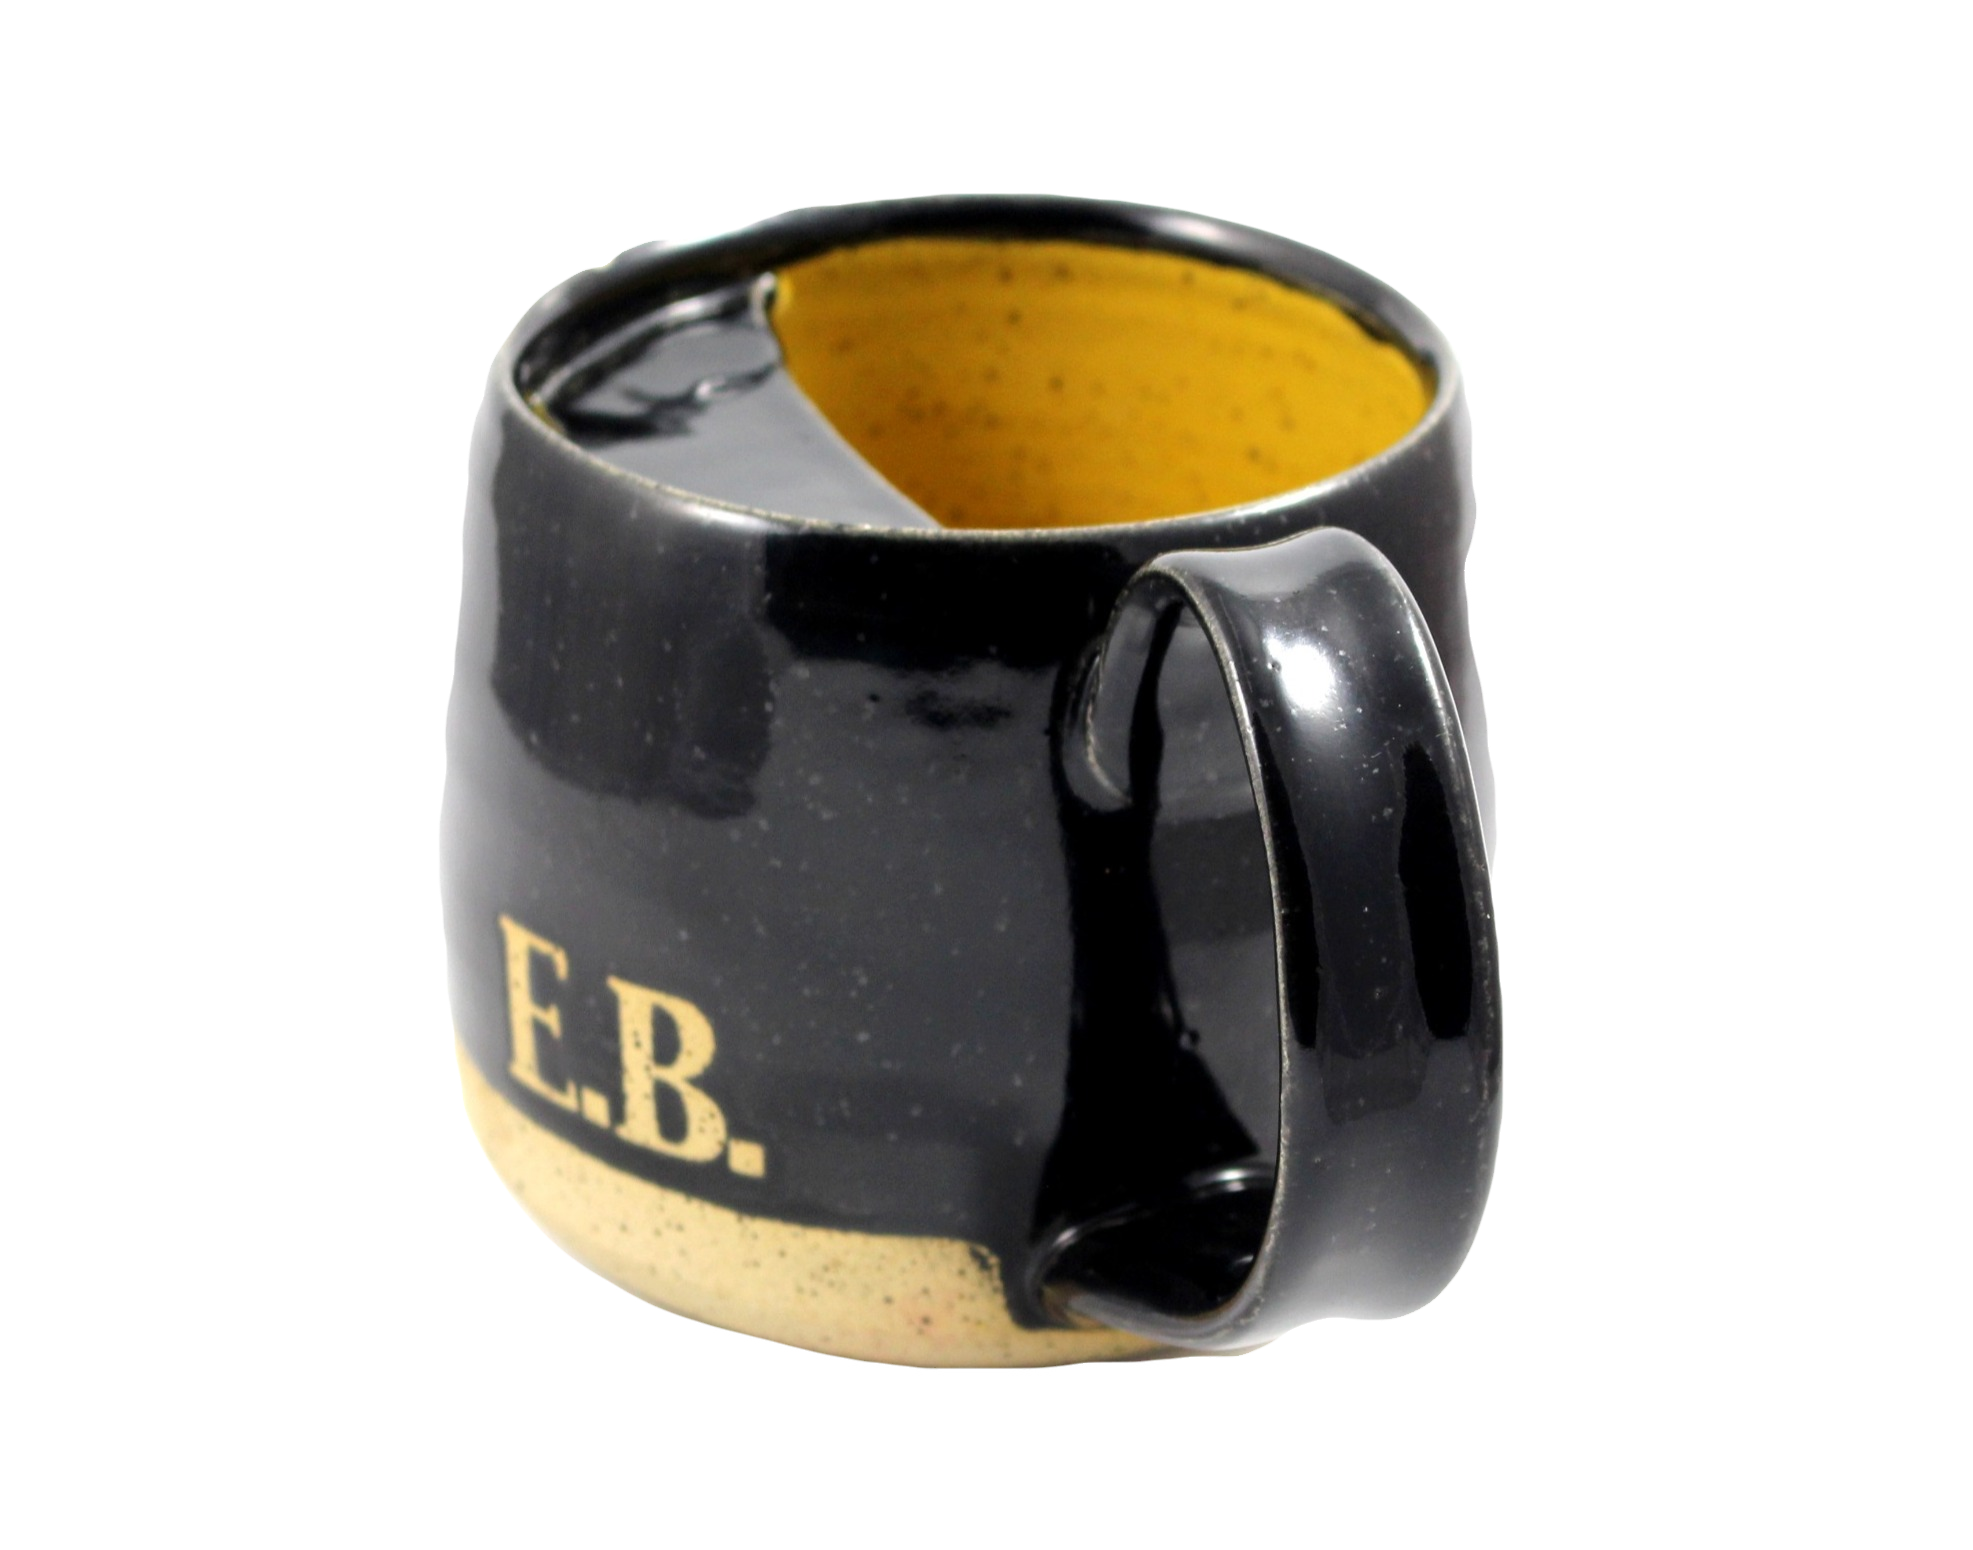 Mug with Moustache Protector | Educated Beards